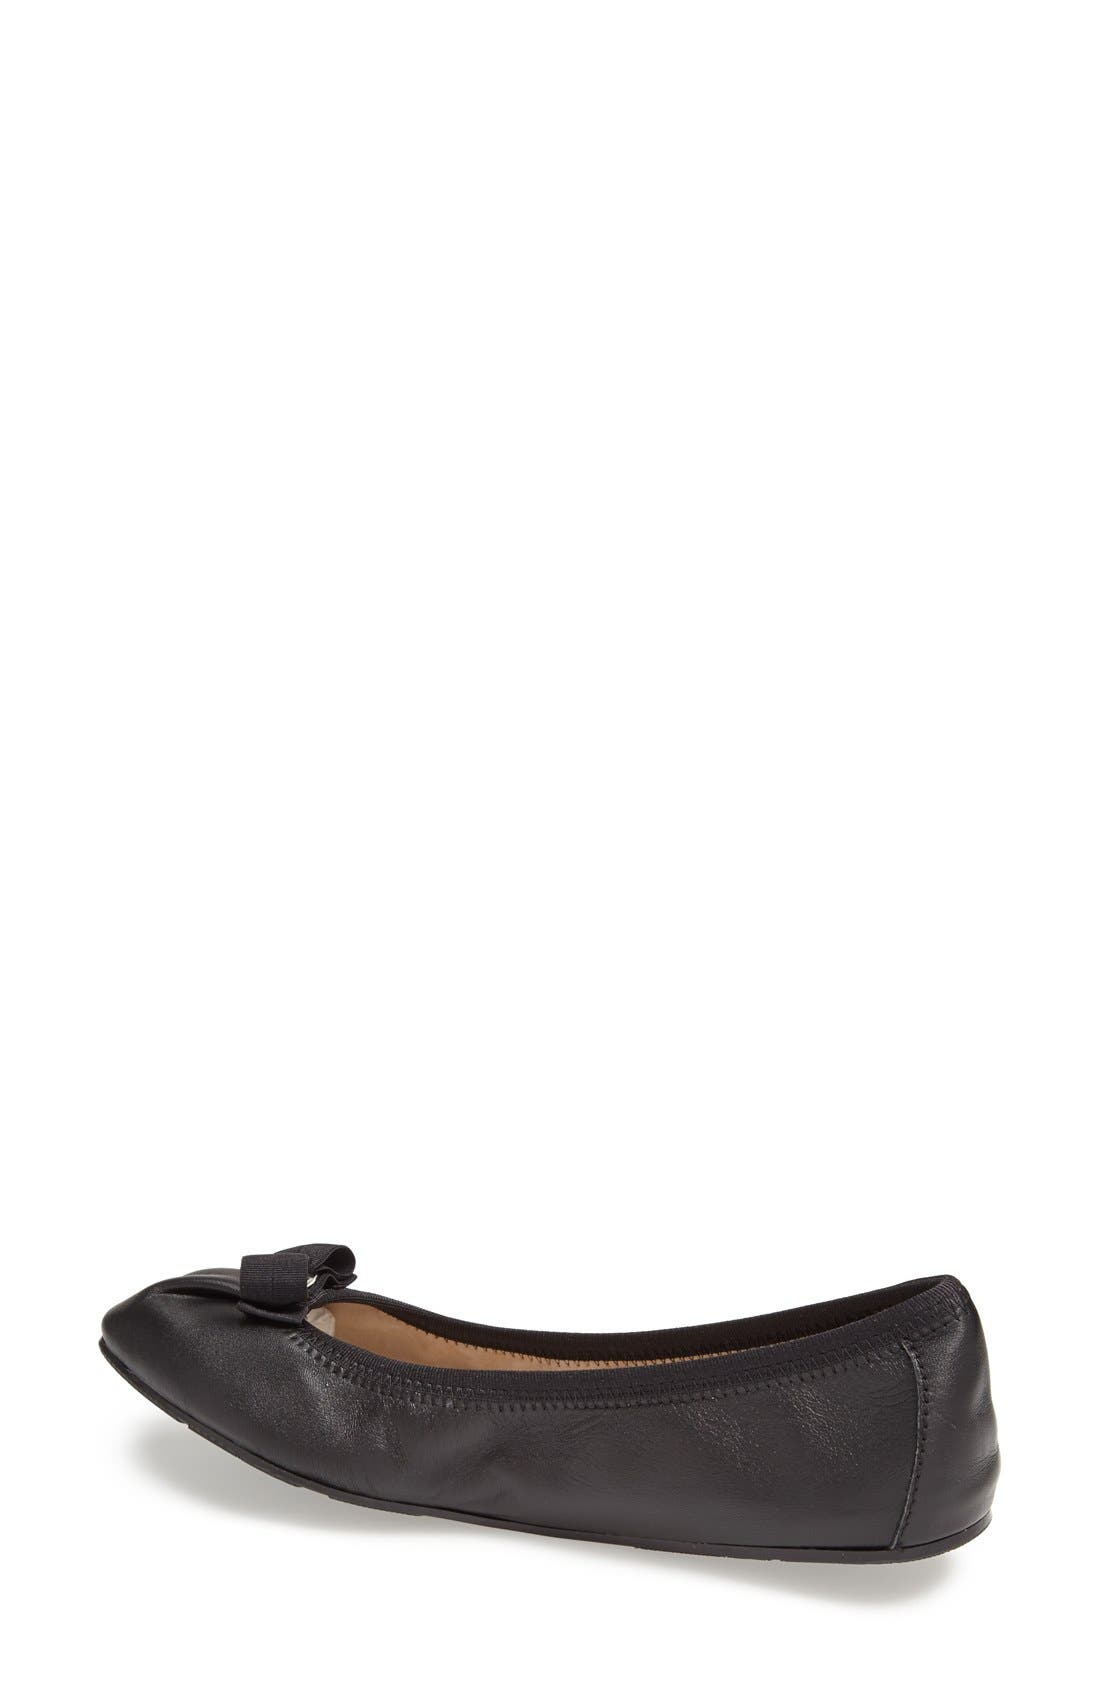 Alternate Image 2  - Salvatore Ferragamo 'My Joy' Flat (Women)